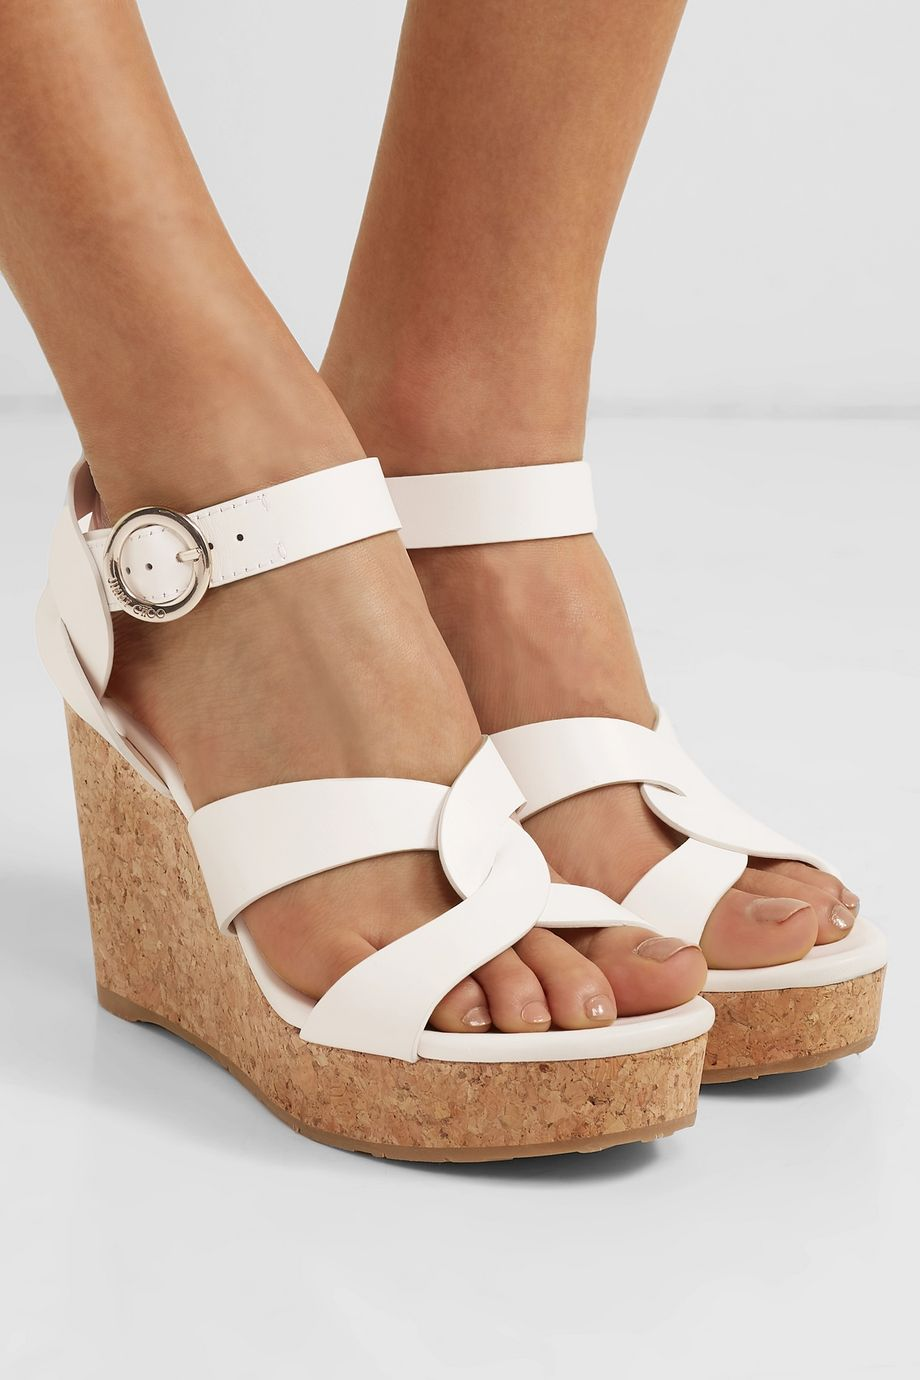 Jimmy Choo Aleili 100 leather wedge sandals